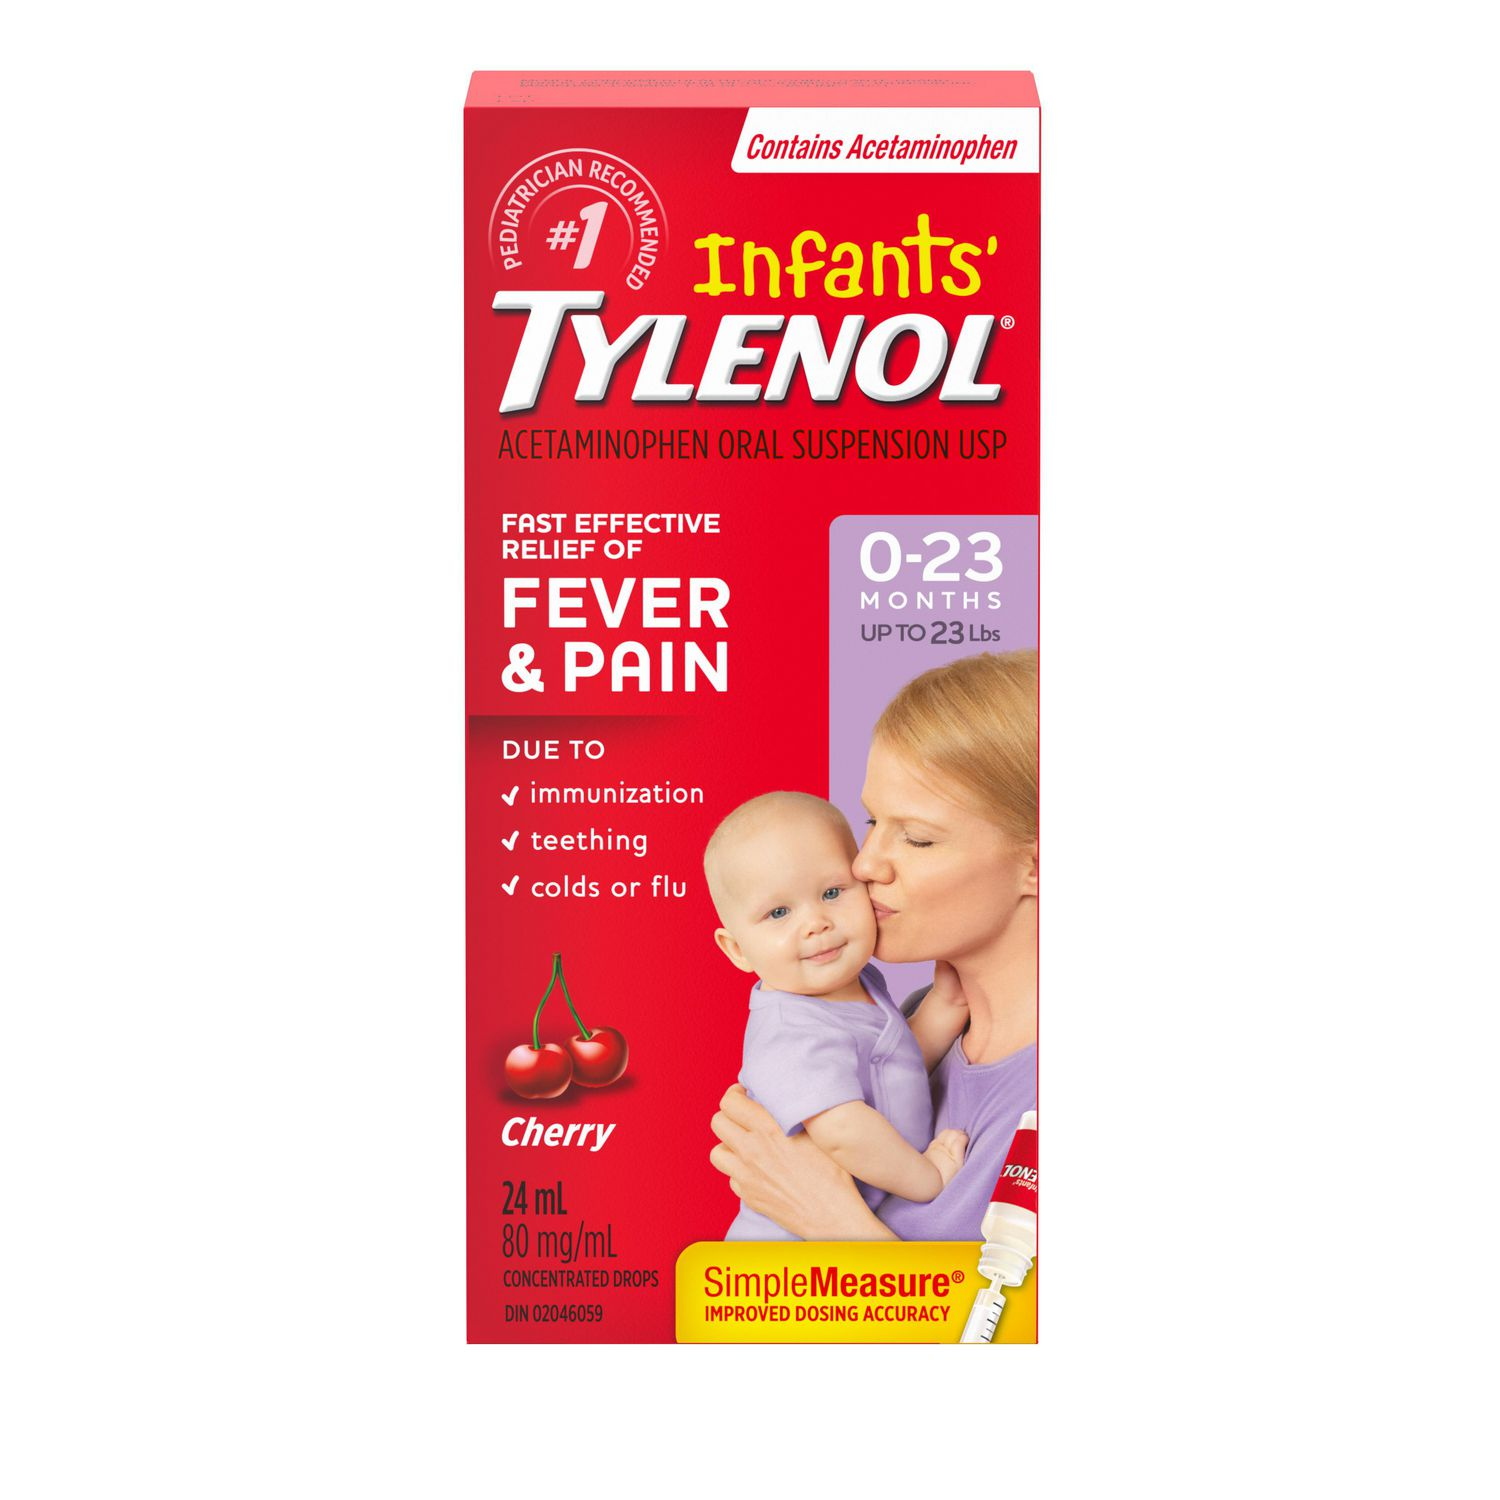 Tylenol Infants Drops Reviews recommend